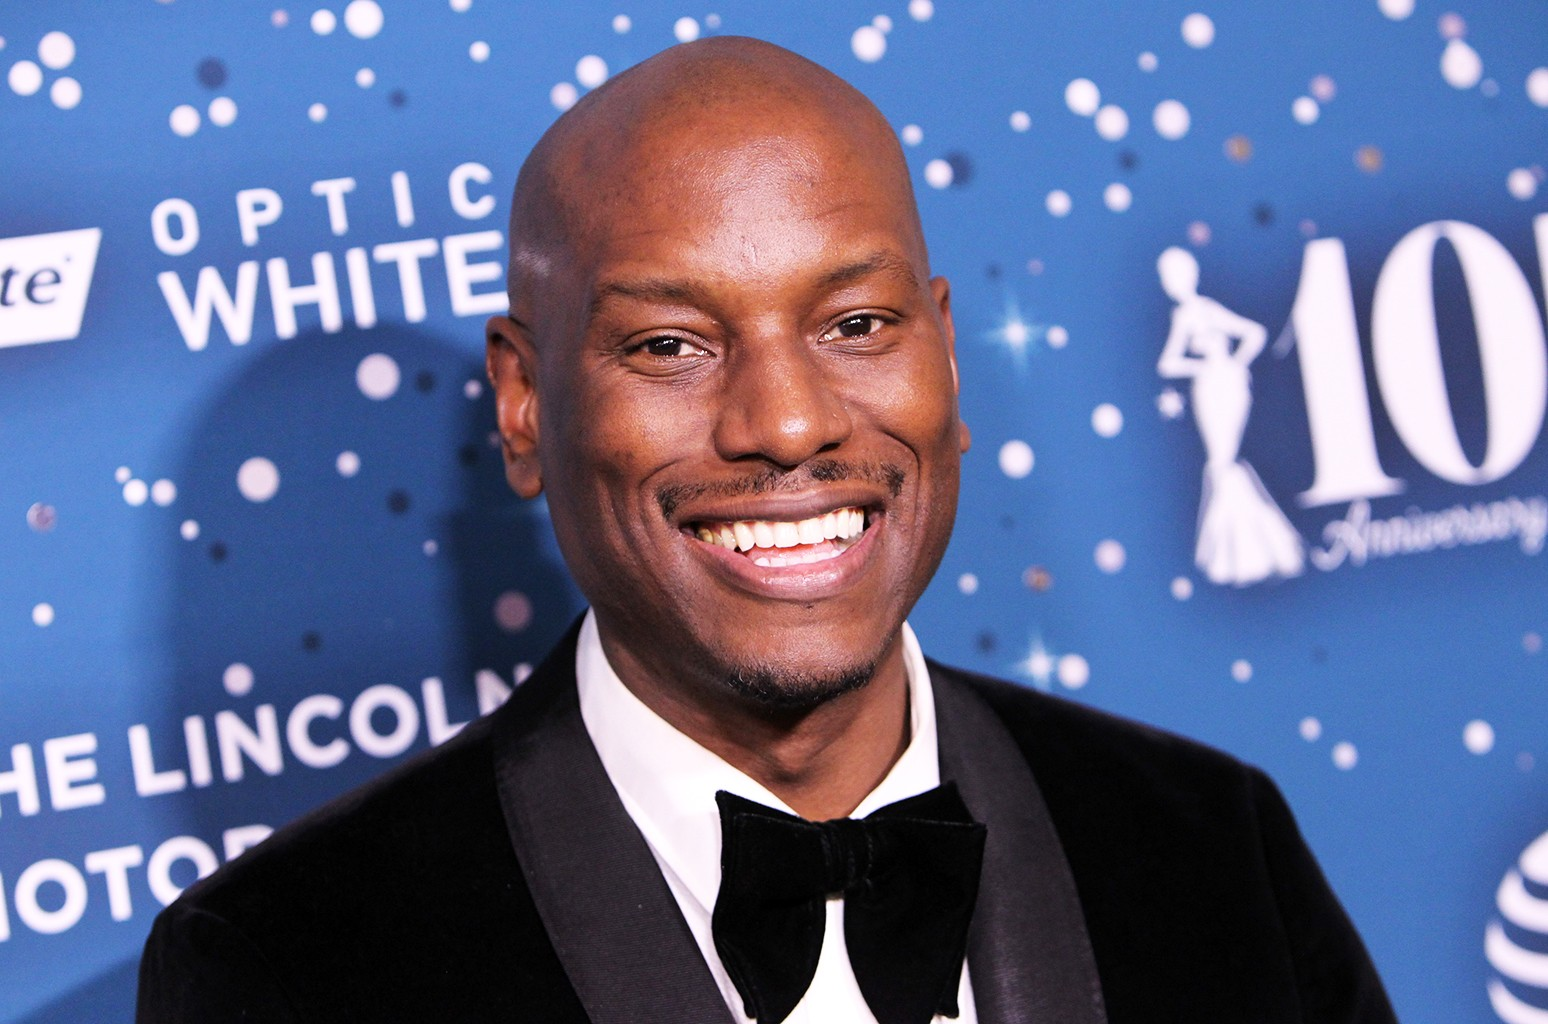 tyrese-gibsons-estranged-wife-wishes-him-a-happy-birthday-after-he-announces-their-split